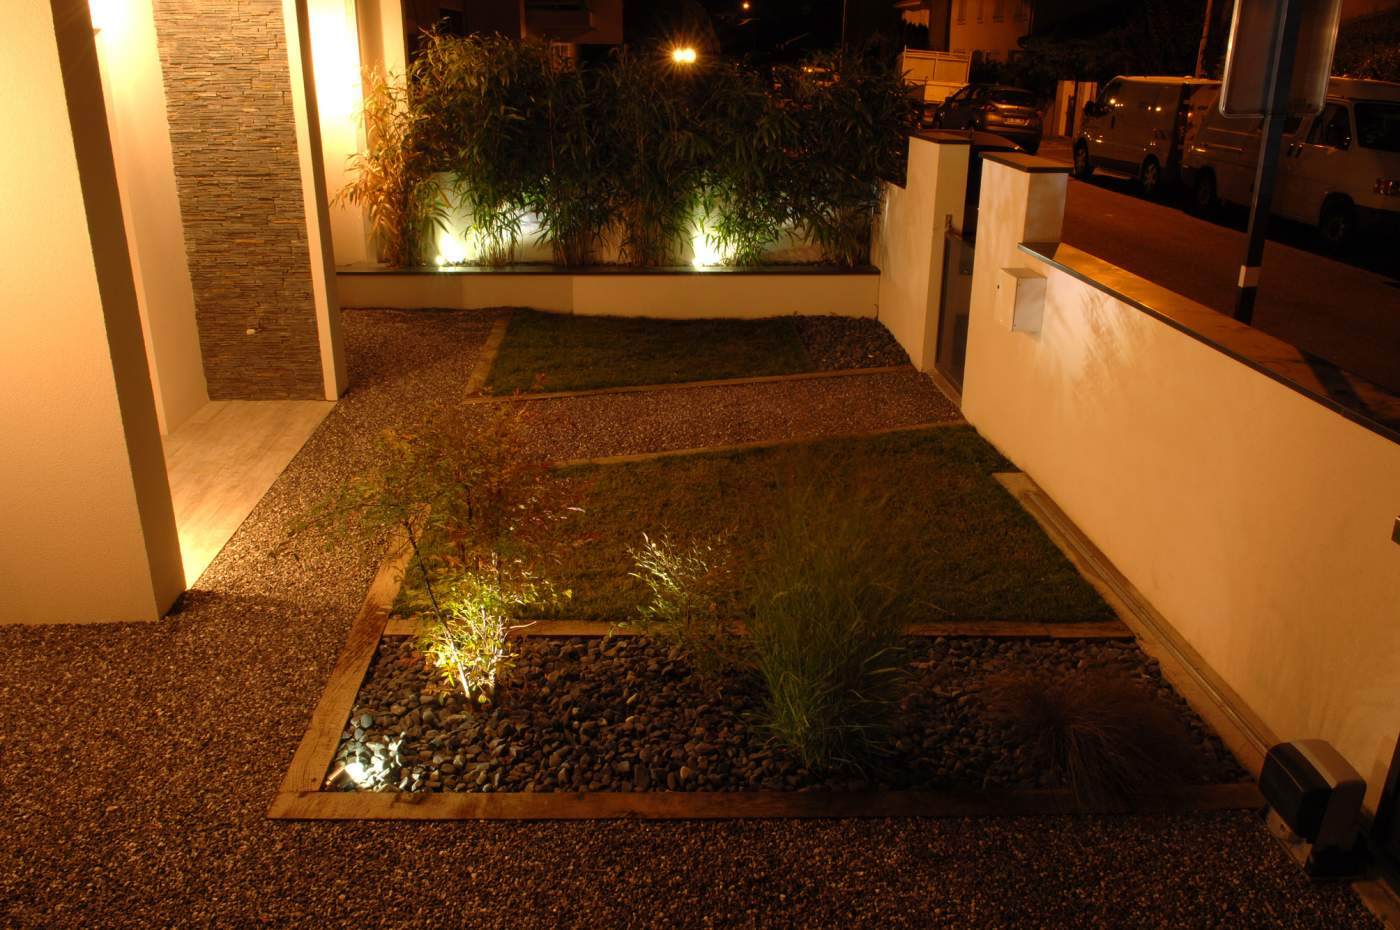 Clairage ext rieur all e eclairage ext rieur for Lumiere exterieure jardin